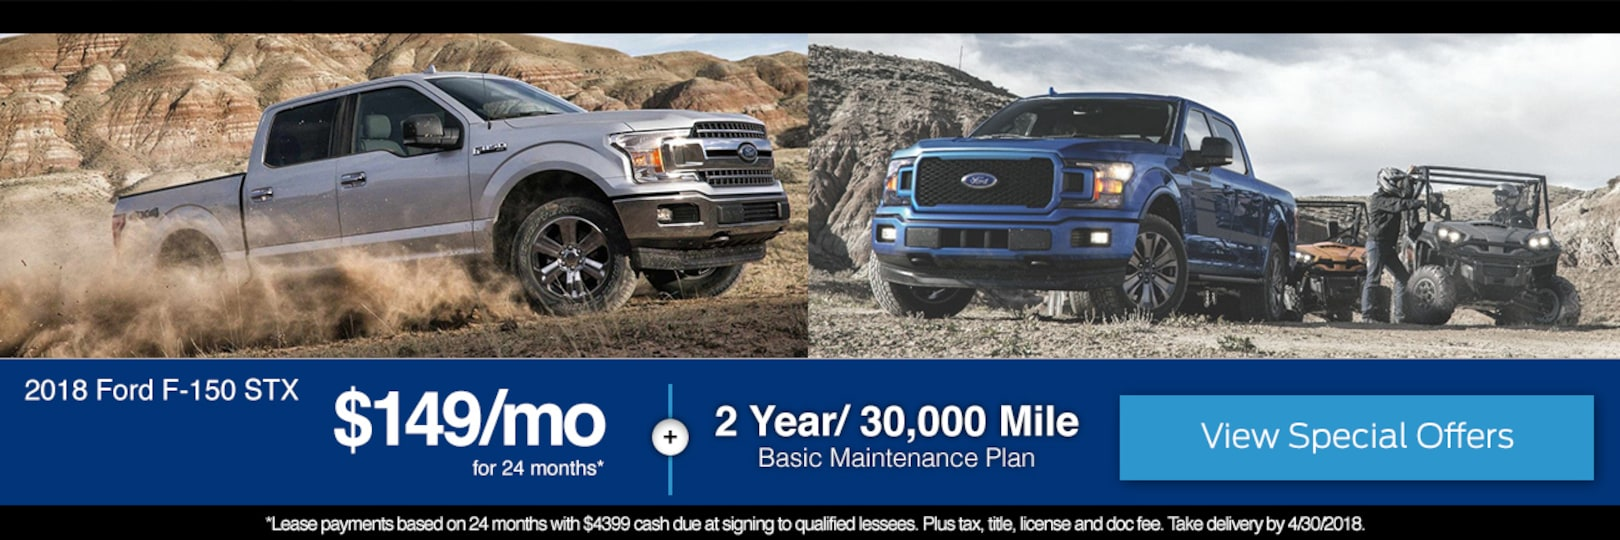 Currie Ford Valpo >> Ford of Valpo   New & Pre-Owned Ford Sales in Valparaiso, IN